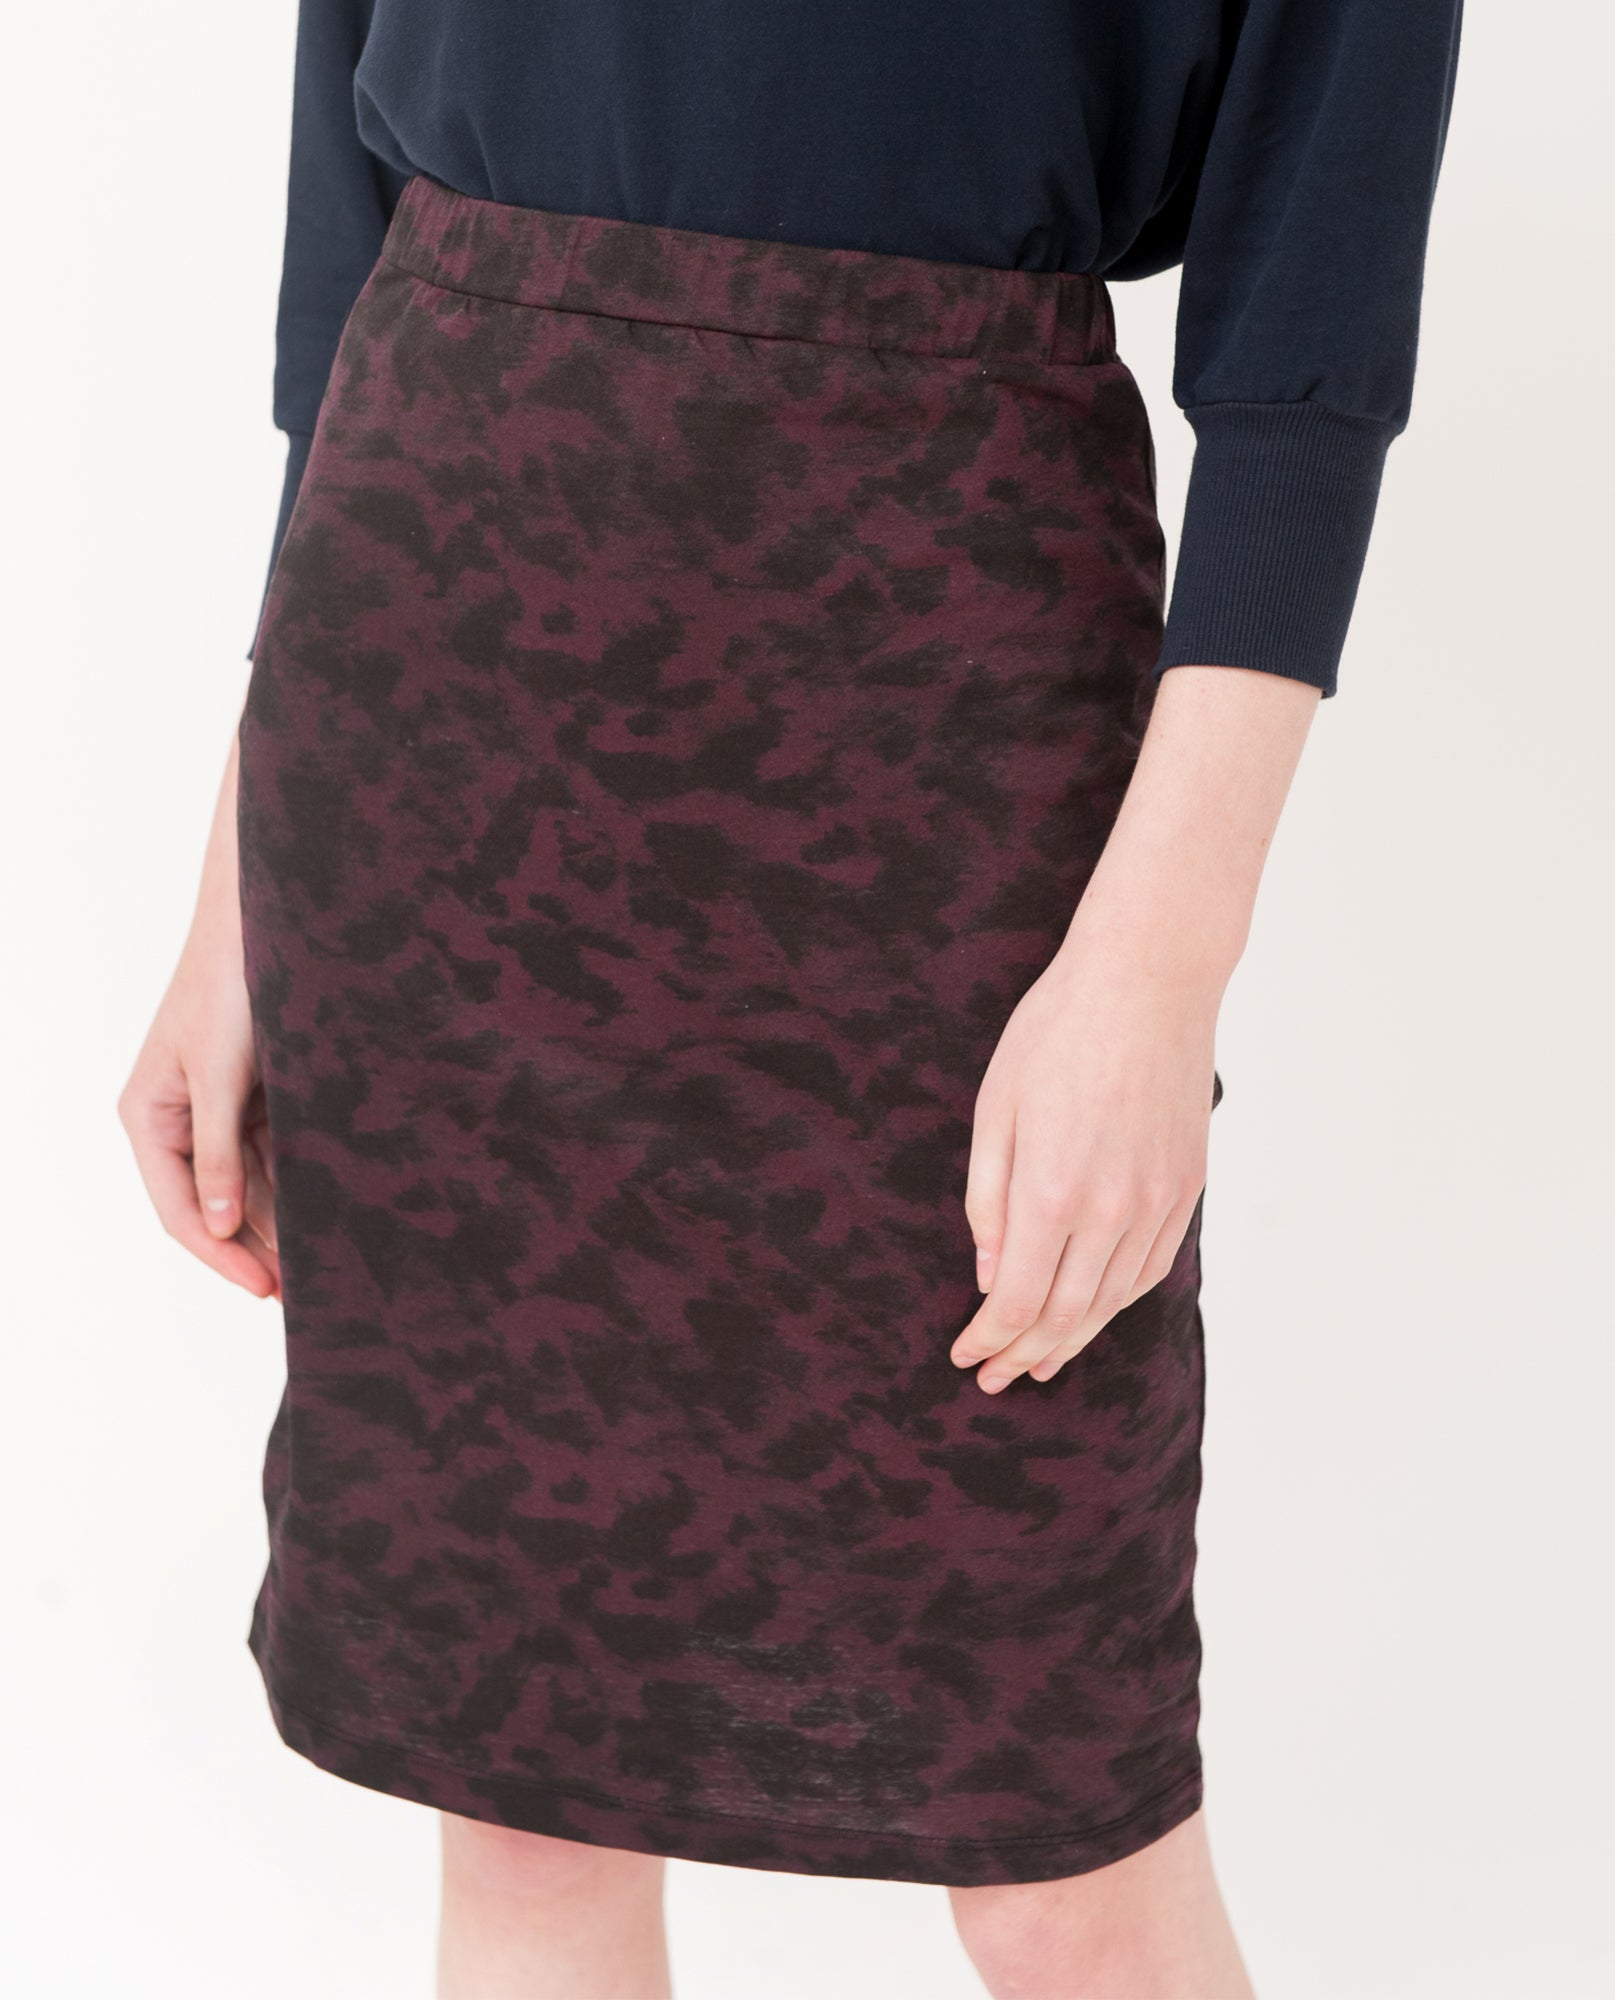 CARRIE Organic Cotton Leopard Print Skirt